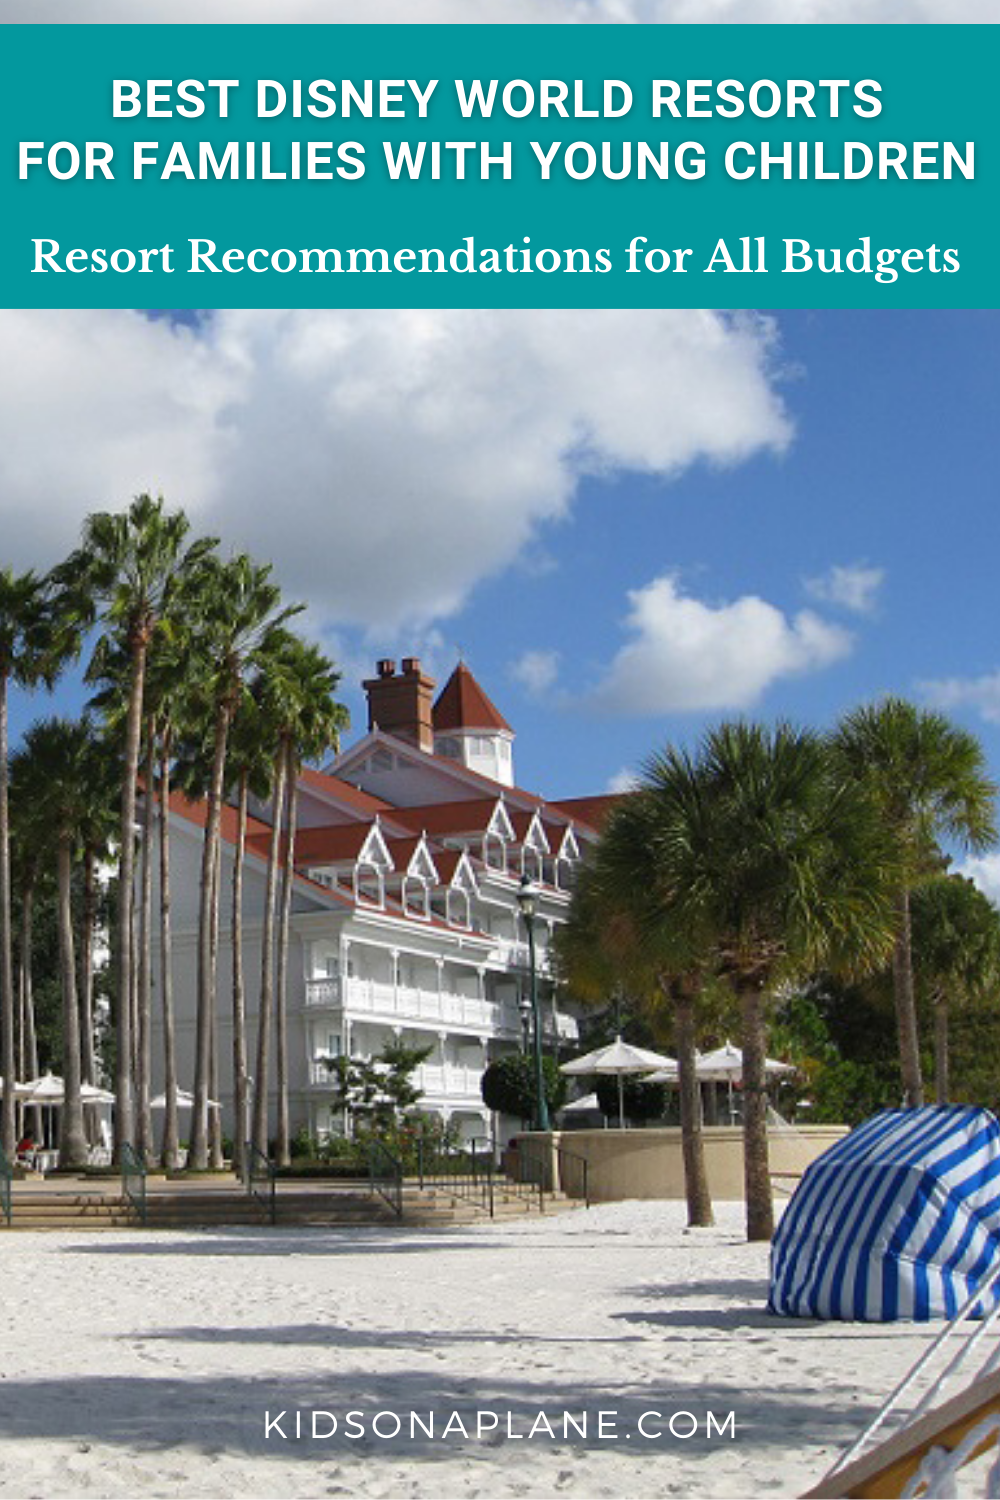 Disney World Resort Recommendations for Families with Young Children for All Budgets